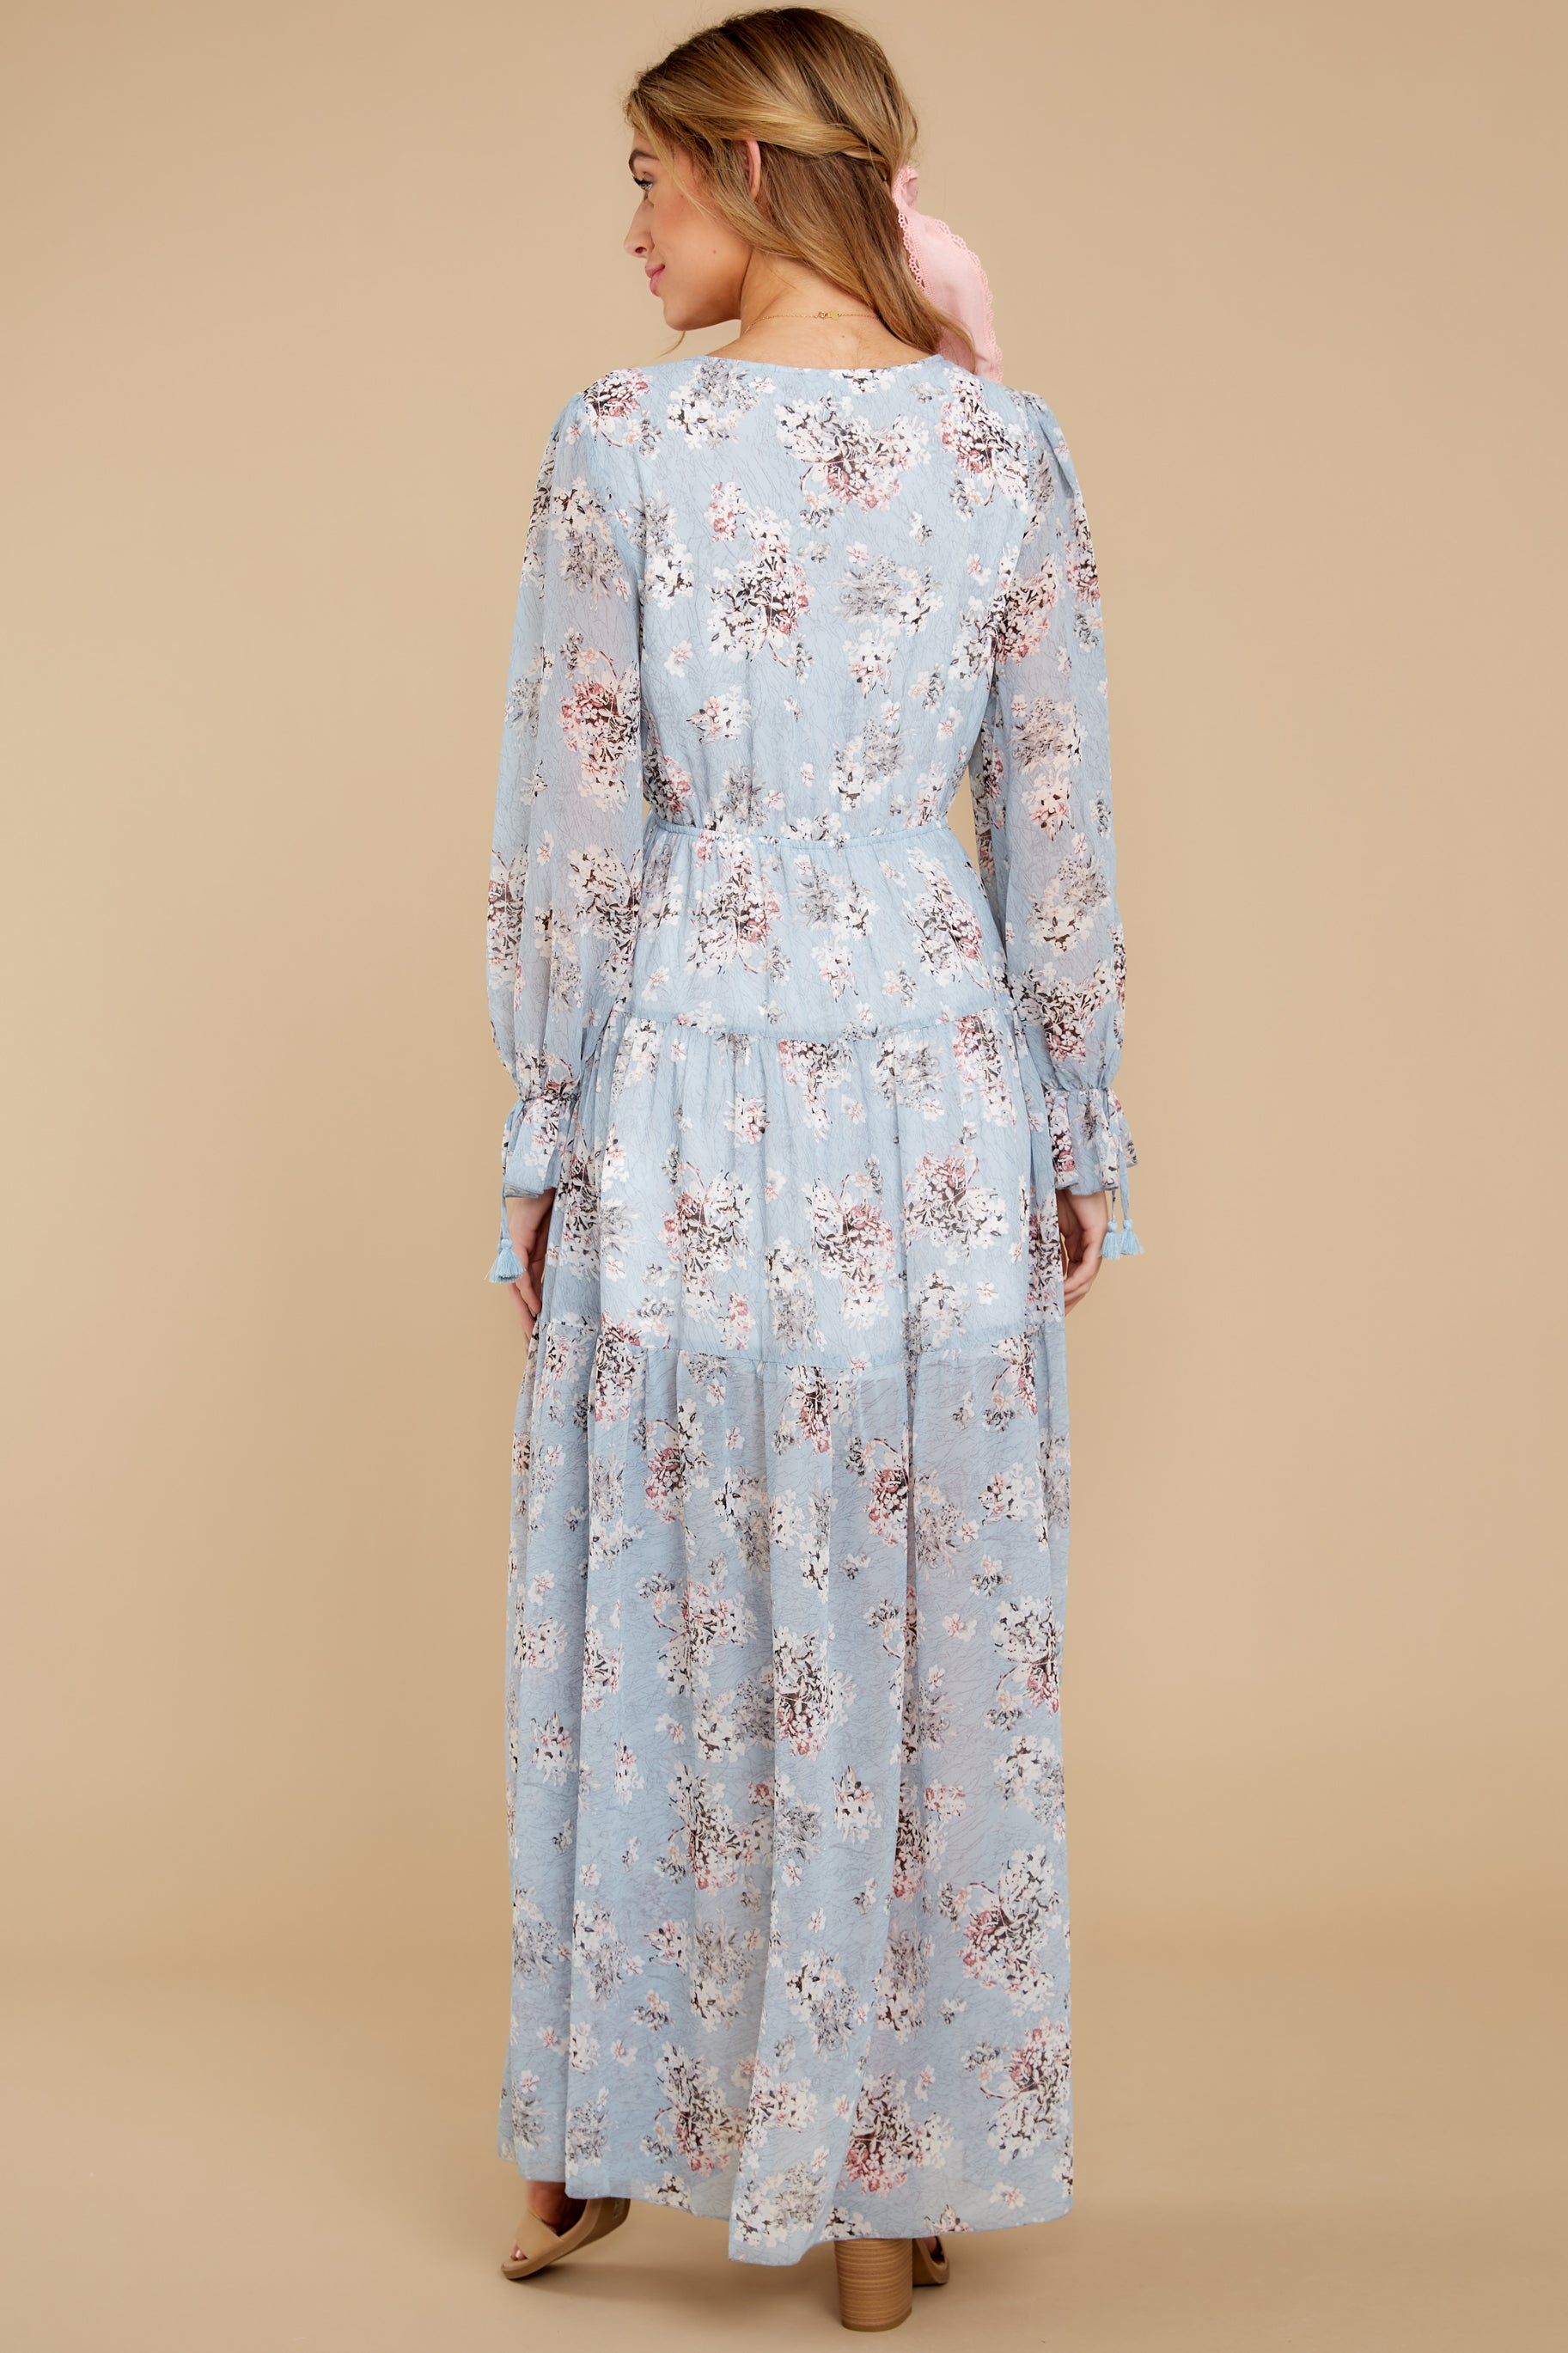 7 Love In Bloom Light Blue Floral Print Maxi Dress at reddress.com